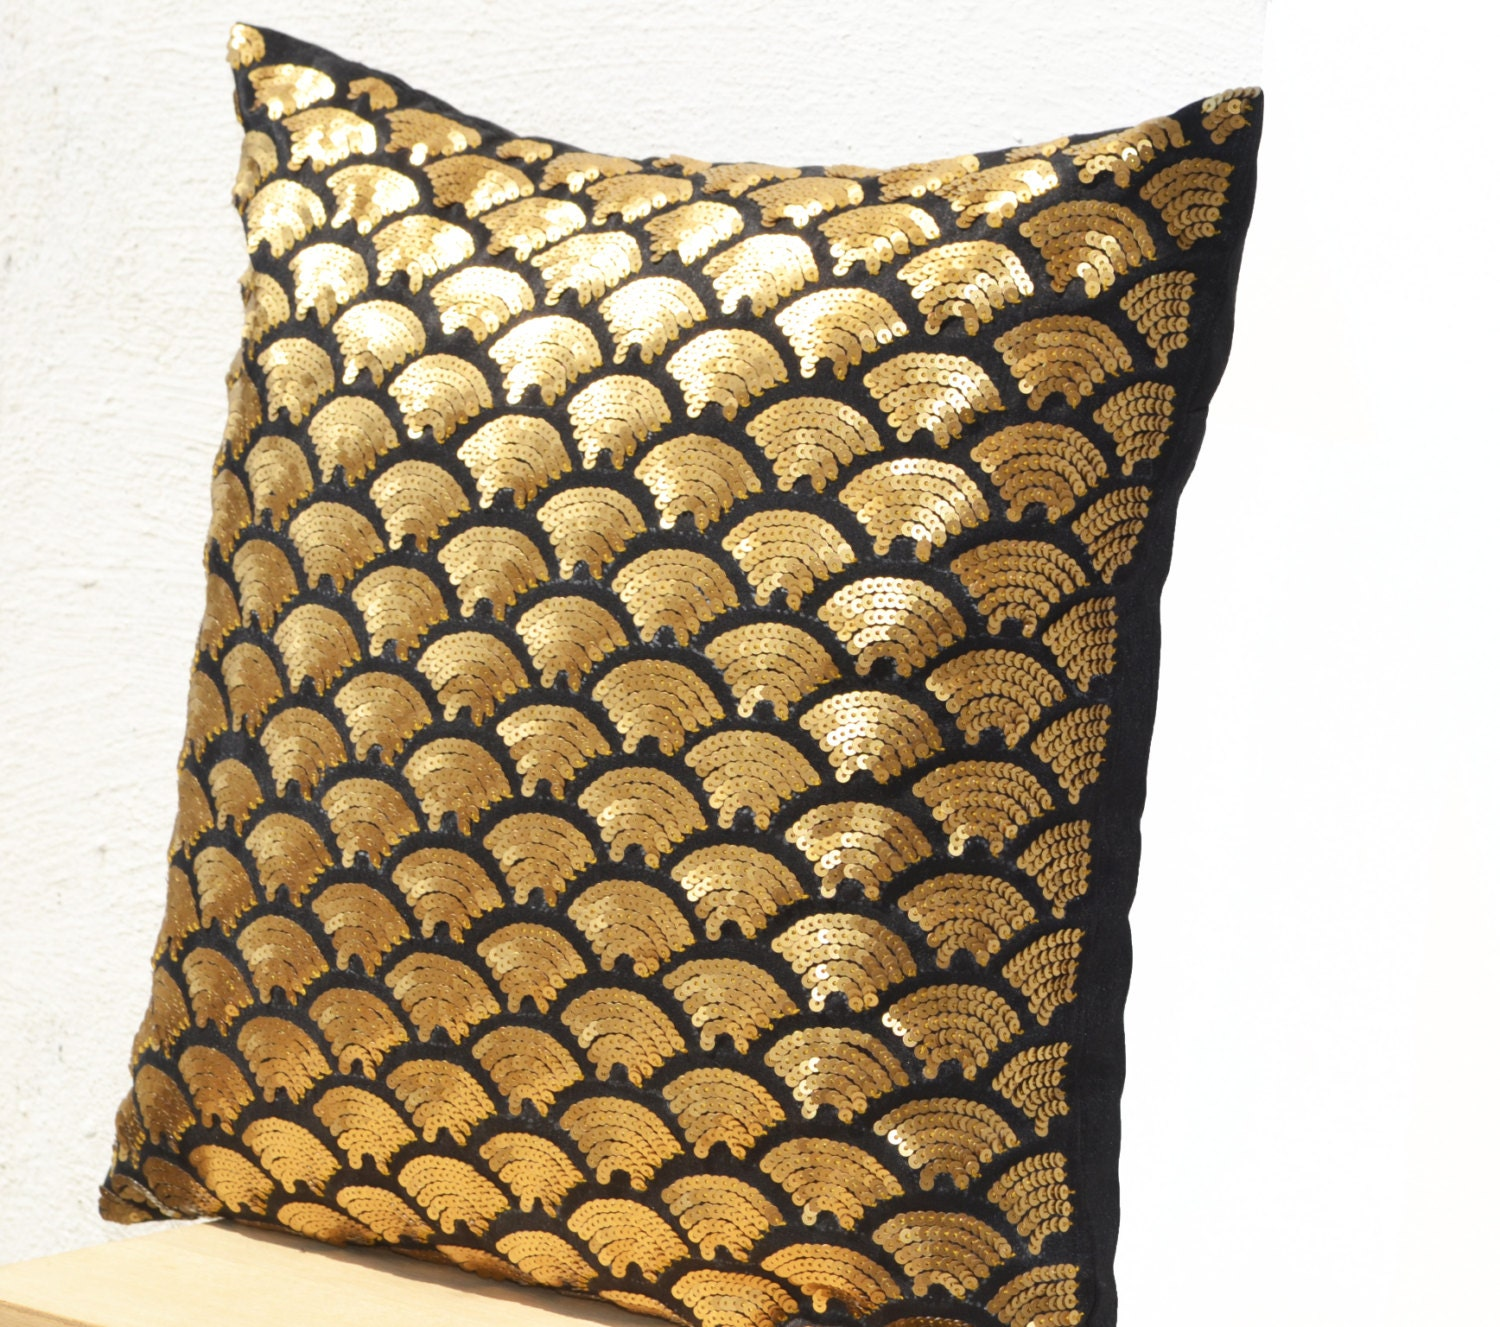 Geometric Black, White & Metallic Gold Pillow Cover, Gorgeous home decor Black and Metallic gold cushion cover. Find this Pin and more on T'aies couture by Marine Ramond. Housse de coussin géométriques noir Pierre & taie See more. from Etsy.